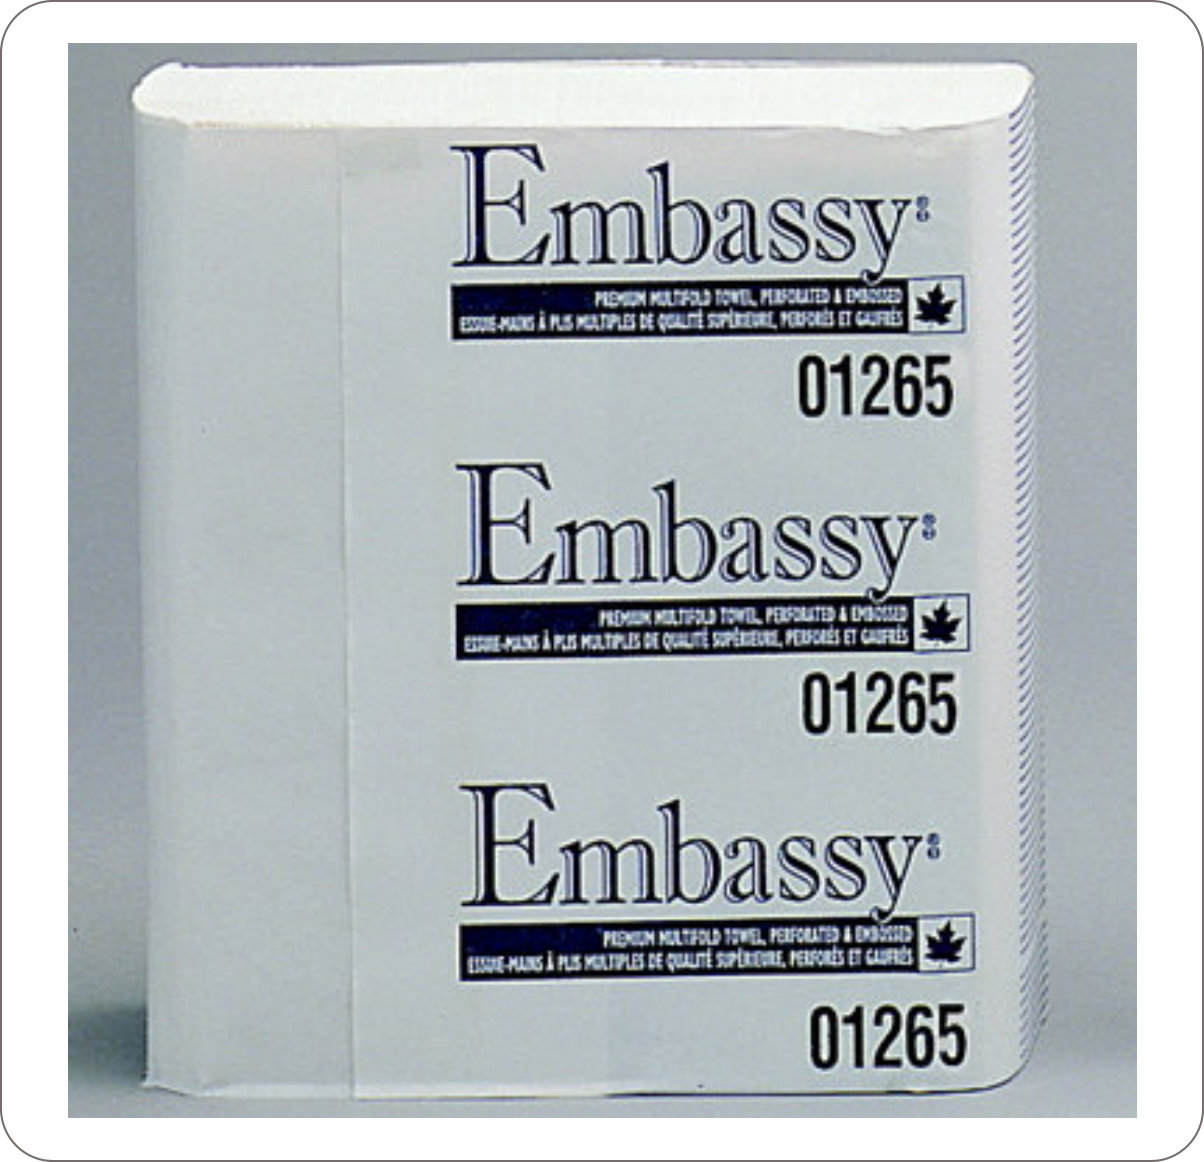 Embassy Supreme Multifold 01265